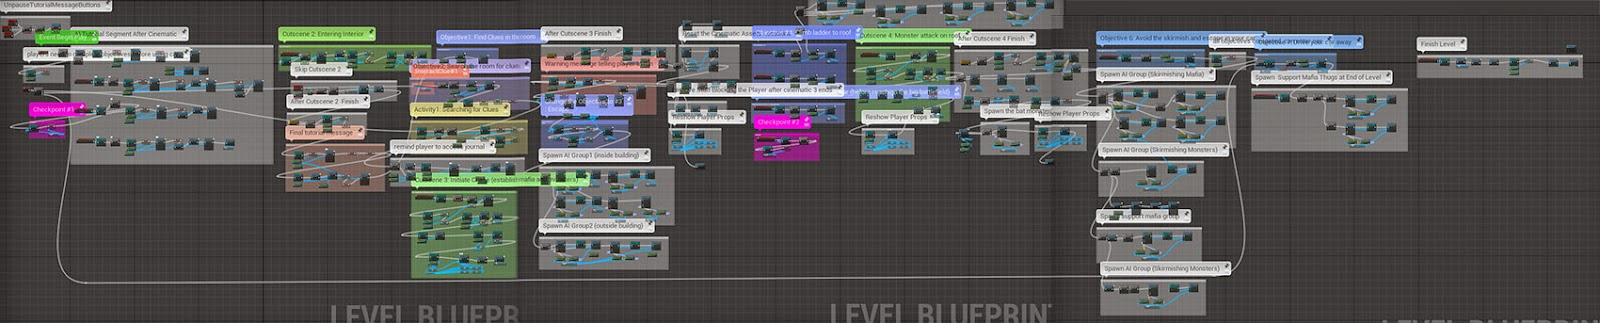 Project rain development blog unreal engine 4 blueprints this is a blueprint setup just for a short tutorial level 3 10ish minutes made it nice with color depending on the event malvernweather Choice Image